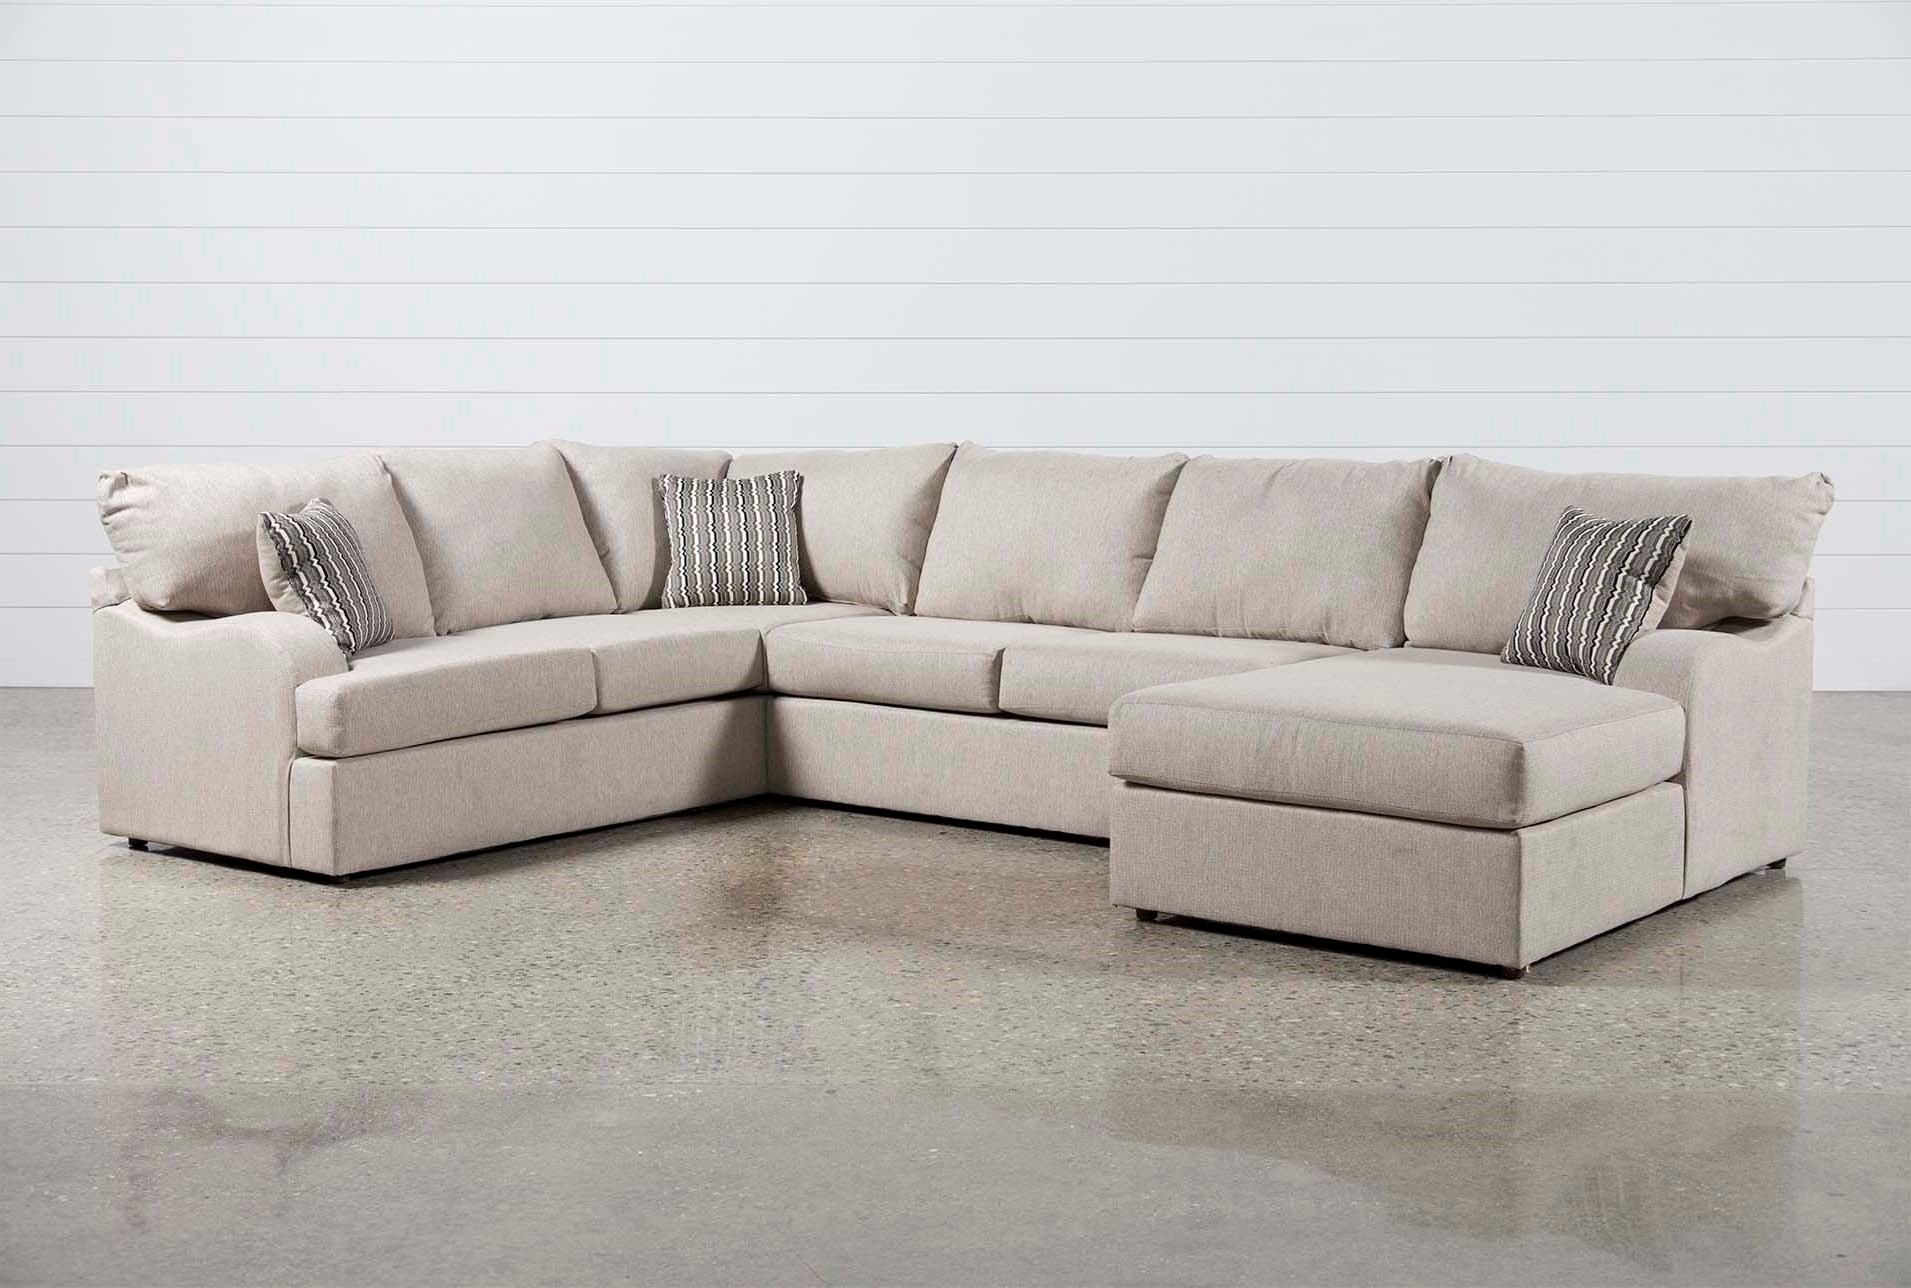 Raf Sectional Turdur 3 Piece W Loveseat Living Spaces 223462 0 Jpg In Turdur 2 Piece Sectionals With Raf Loveseat (View 5 of 25)